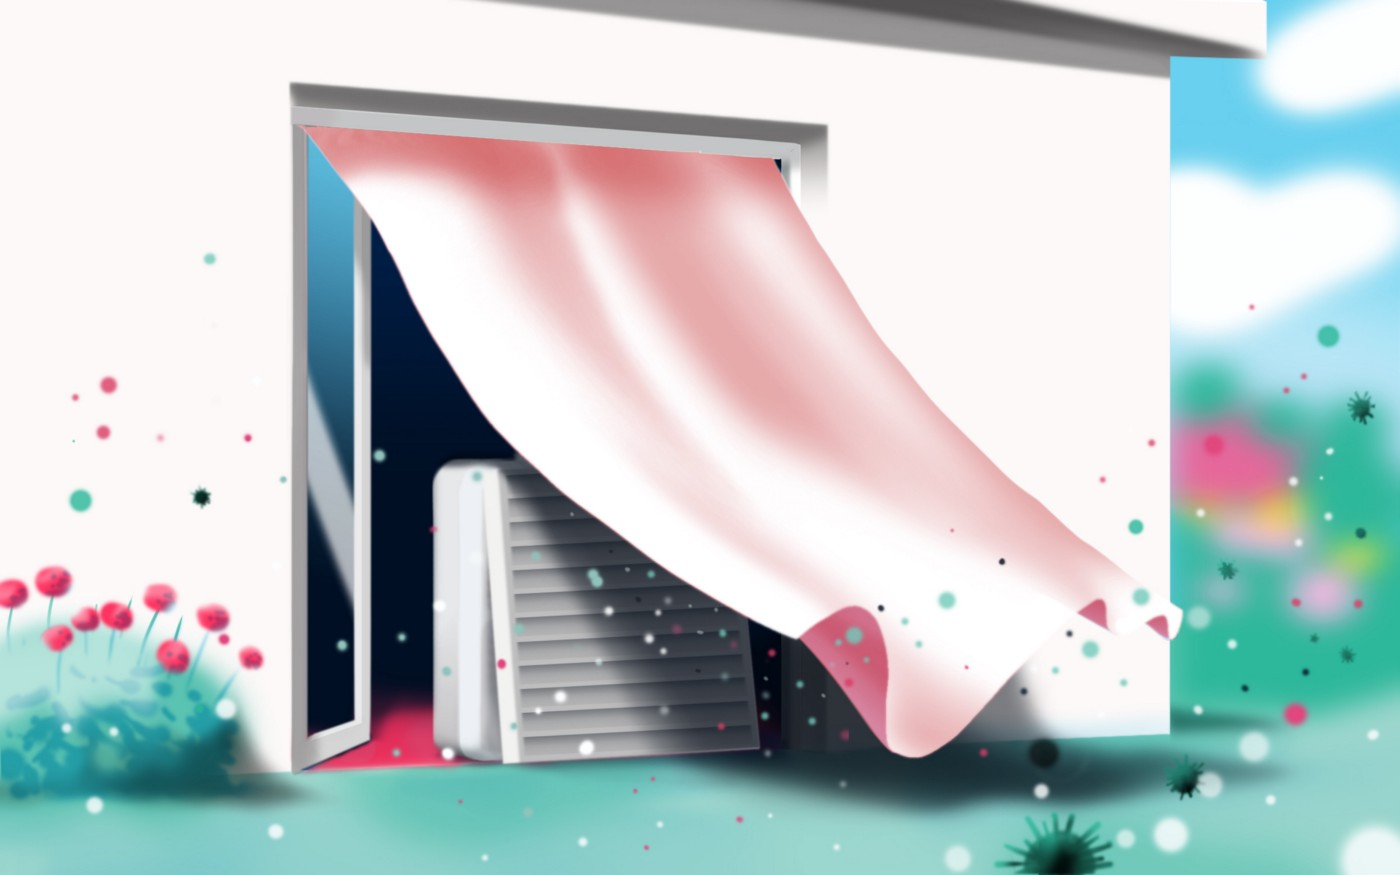 Illustration of a box fan placed by a door blowing air outdoors.